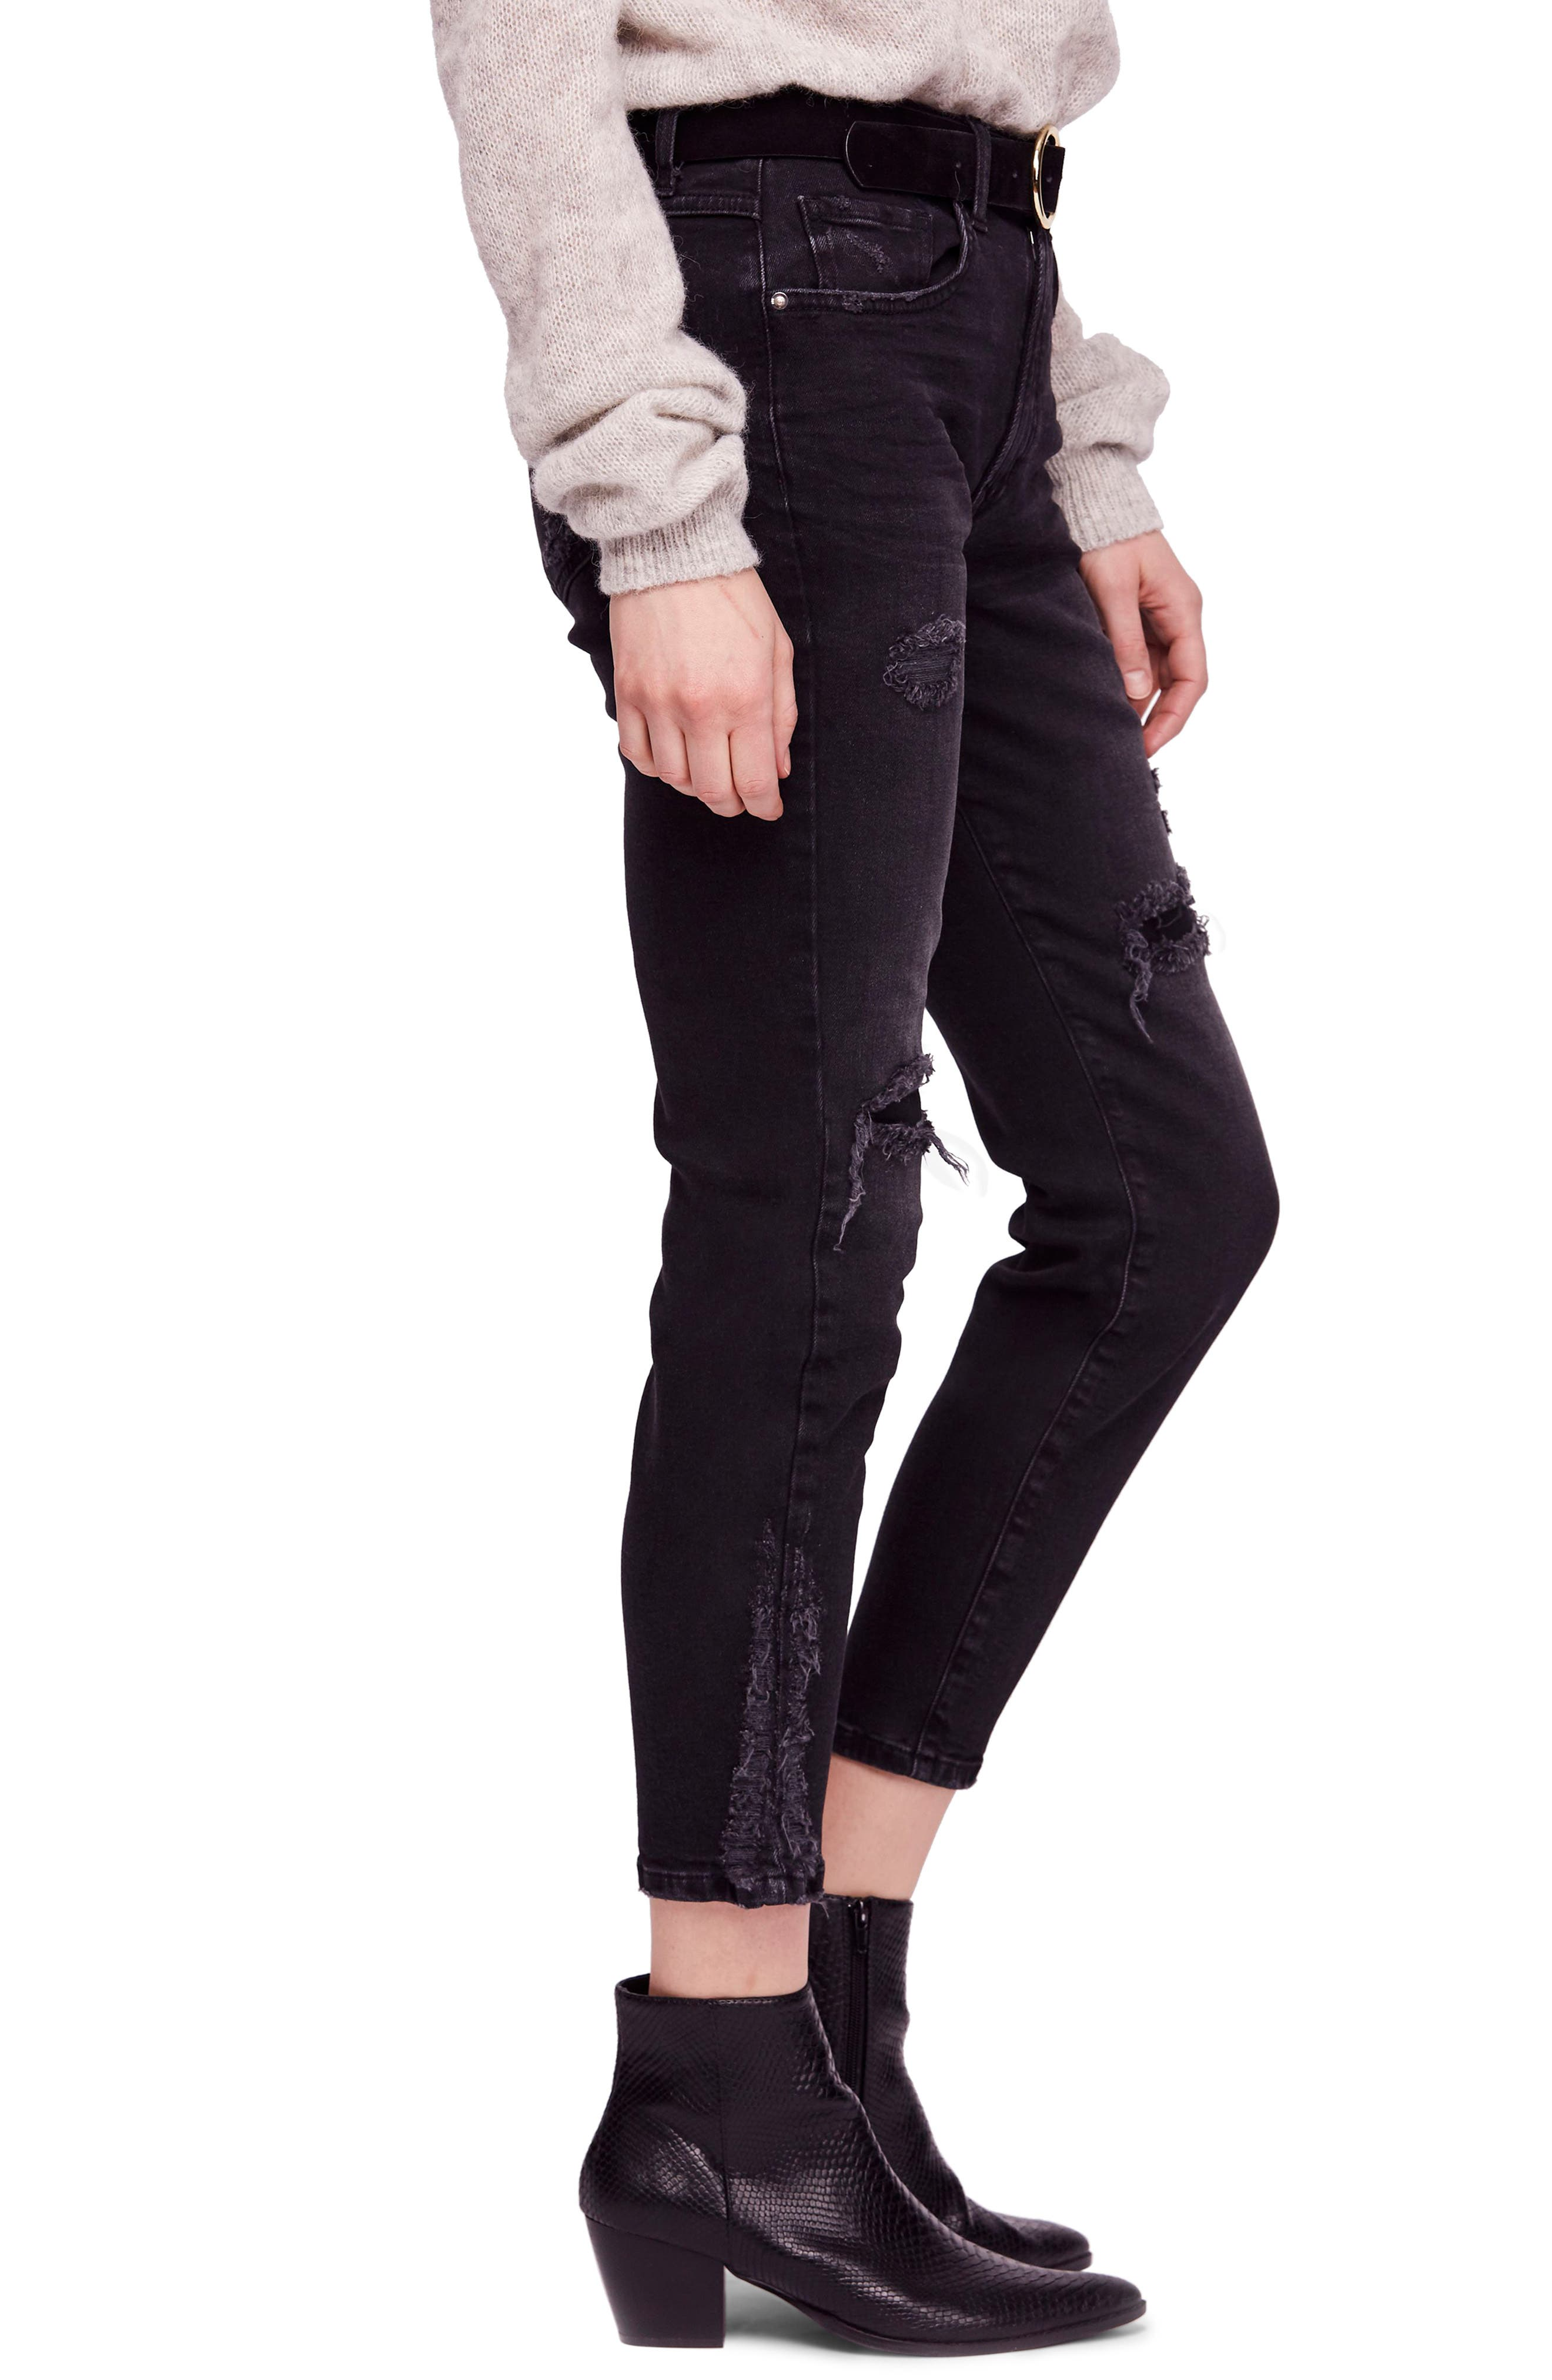 About a Girl Ripped High Waist Crop Skinny Jeans,                             Alternate thumbnail 3, color,                             BLACK